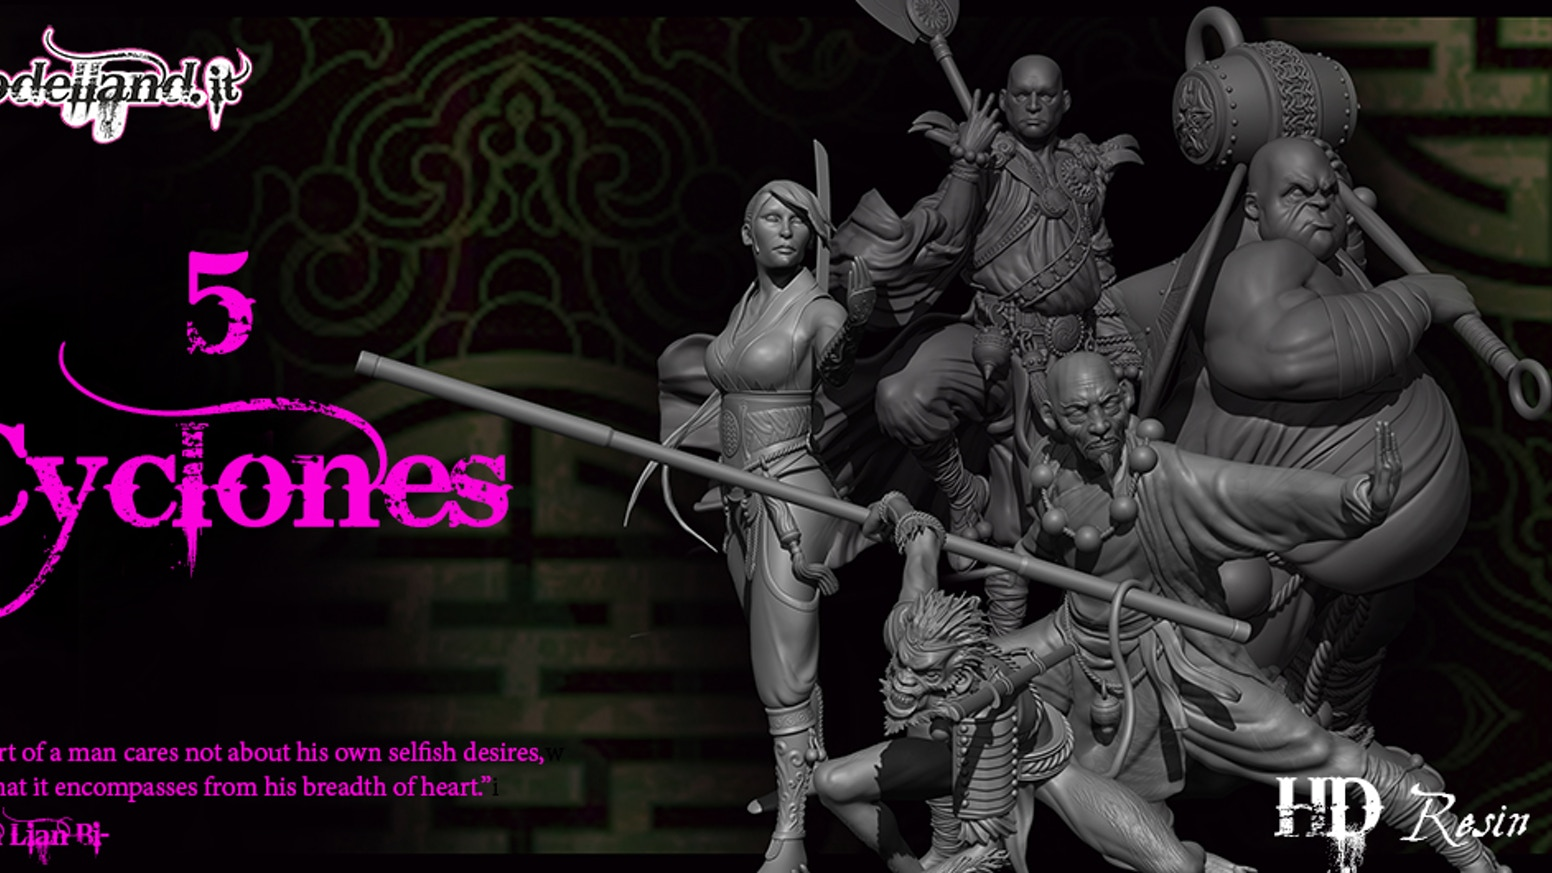 Join 'The Five Cyclones': 75mm  highly detailed resin miniatures for collectors and gamers to assemble and paint!